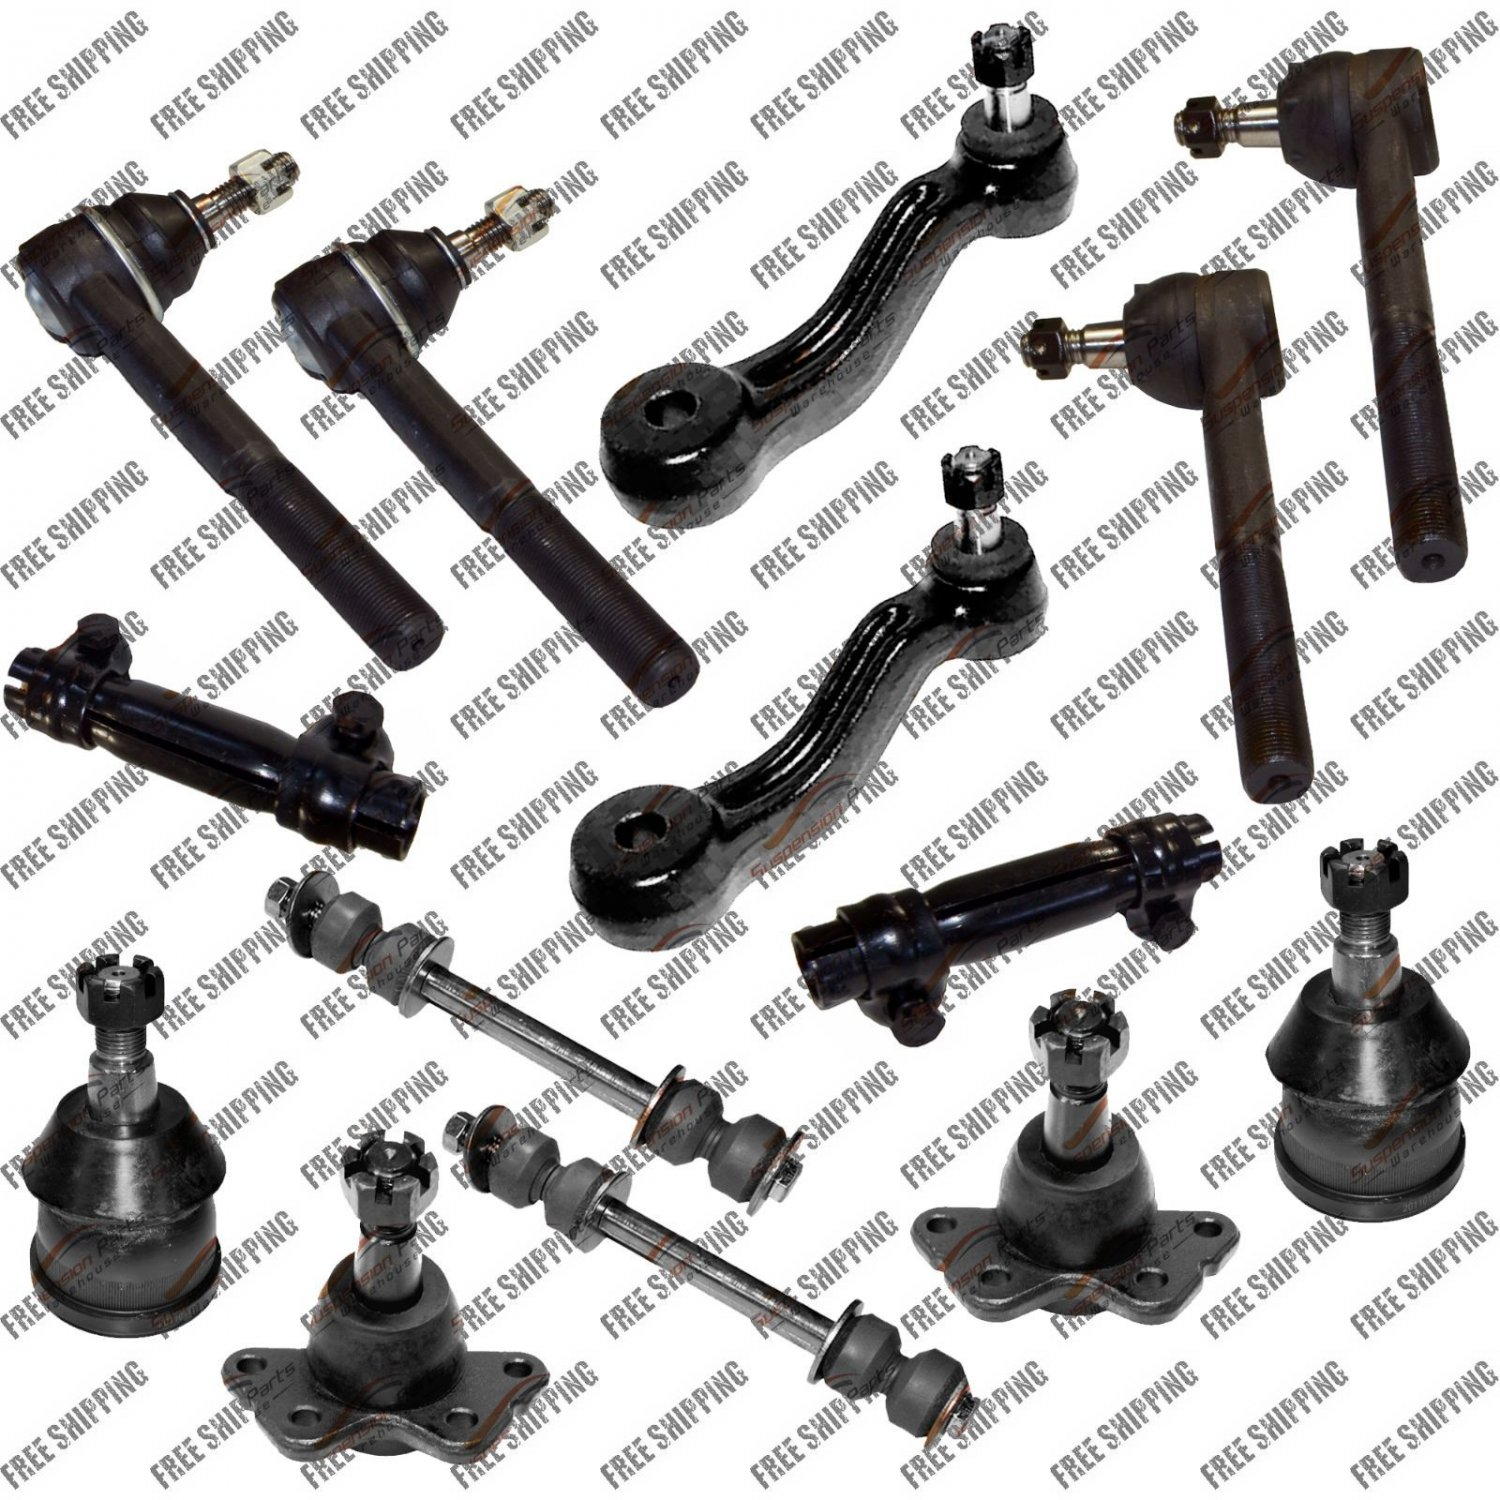 New Steering Kit Idler Arm Tie Rods Ball Joints For Chevrolet Express 2500 3500